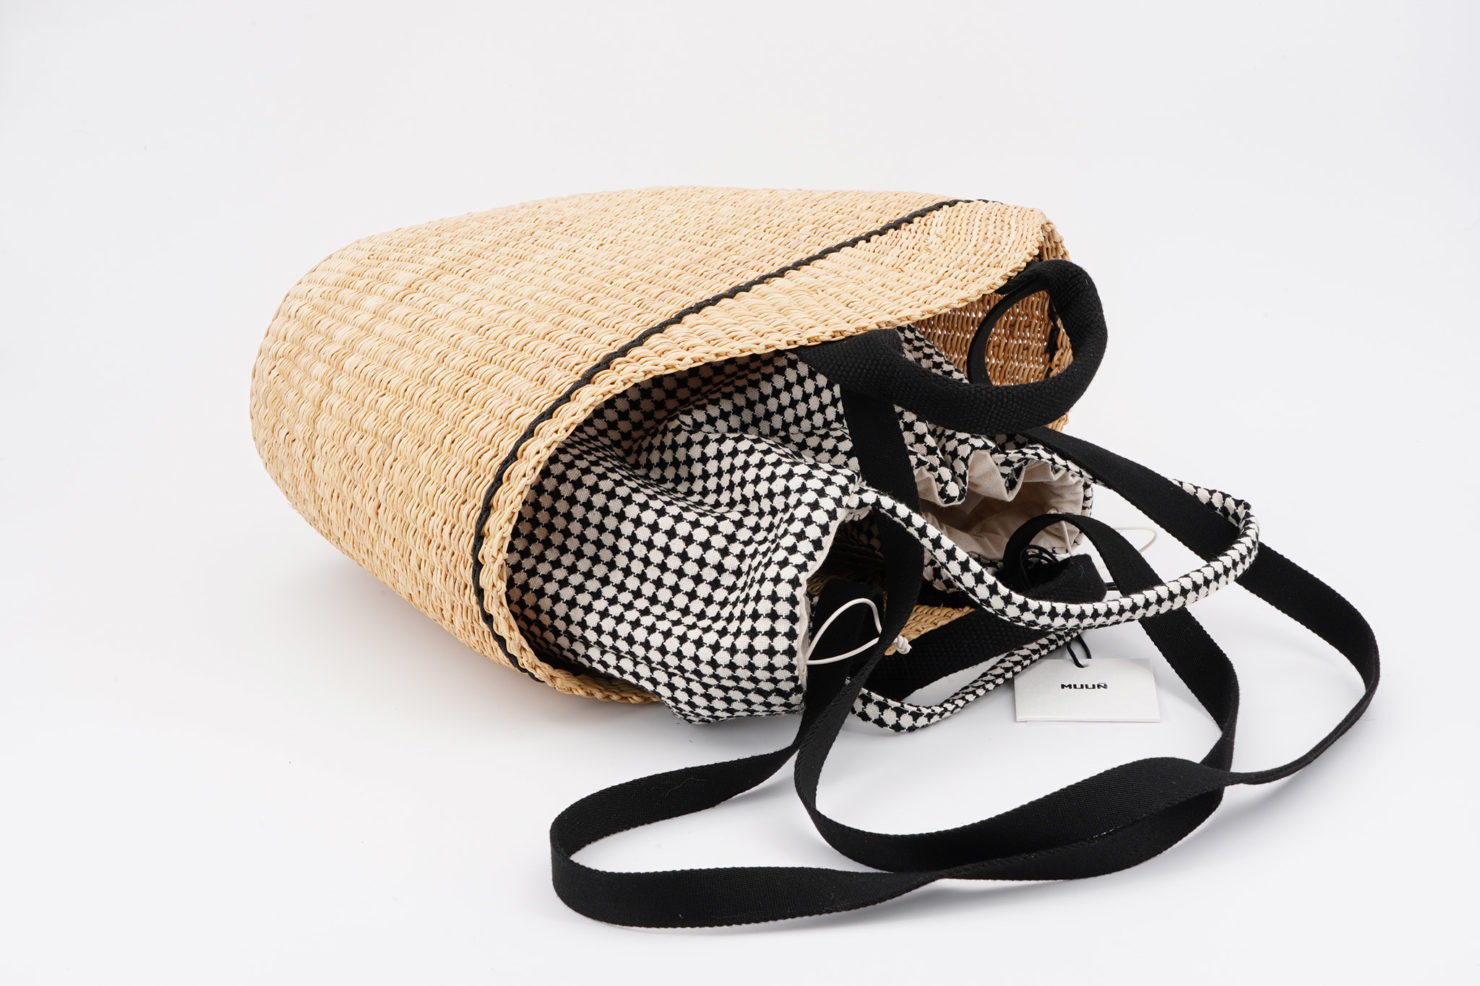 NATH DELFT STRAW BAG WITH REMOVABLE POUCH OPEN MUUN